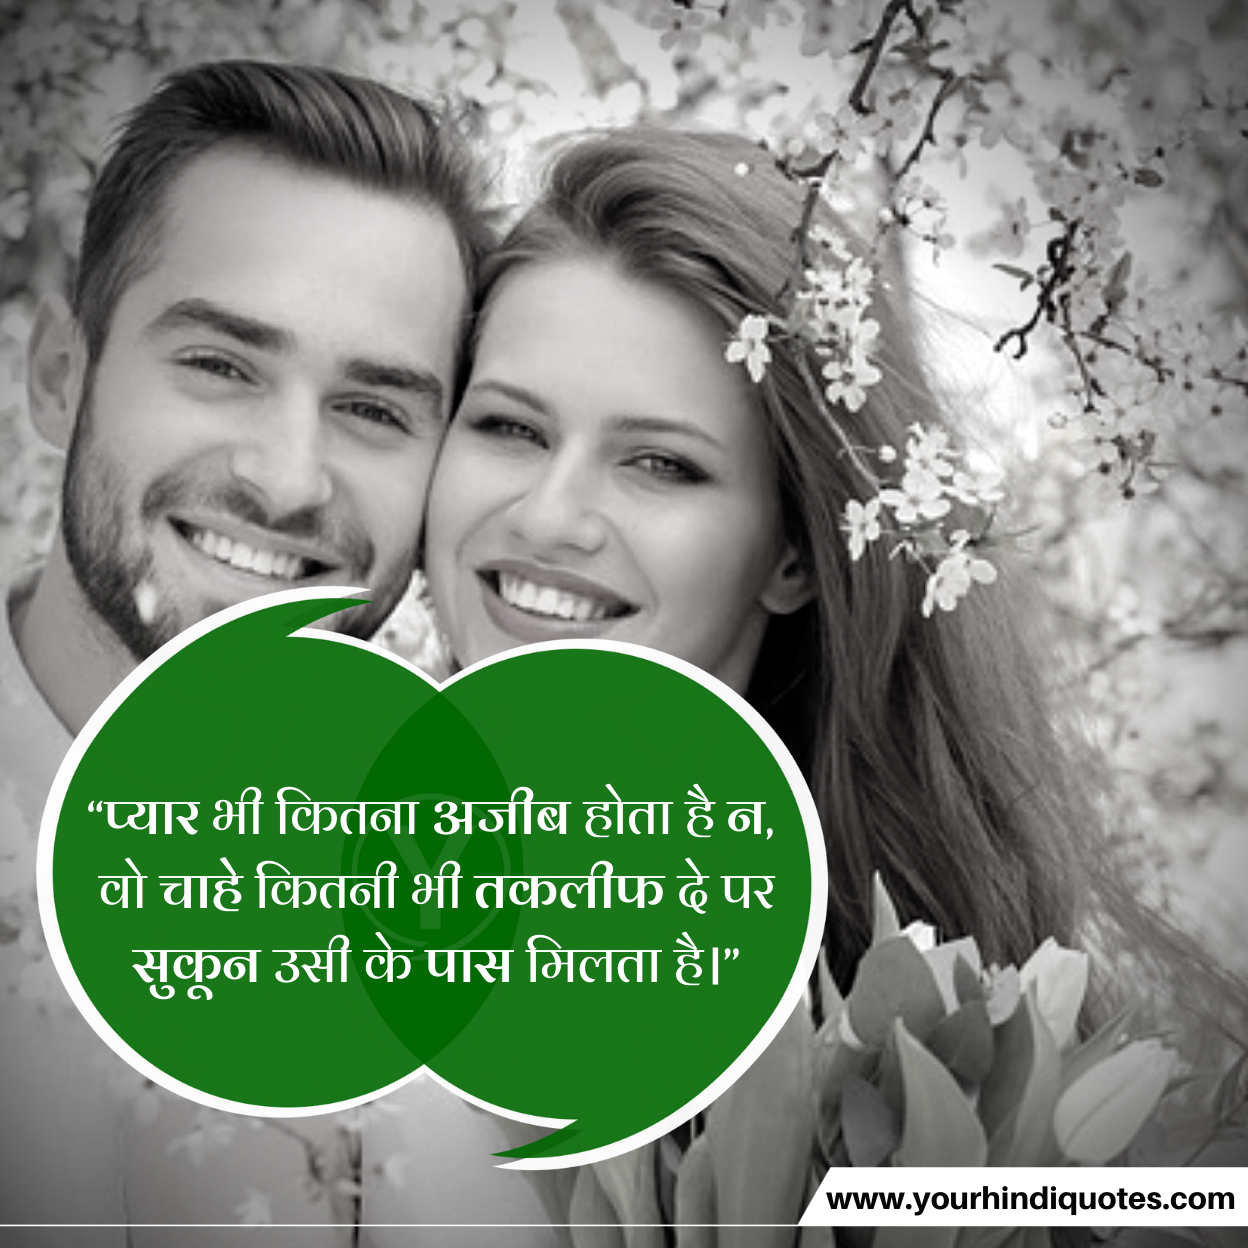 Love WhatsApp Hindi Status Image